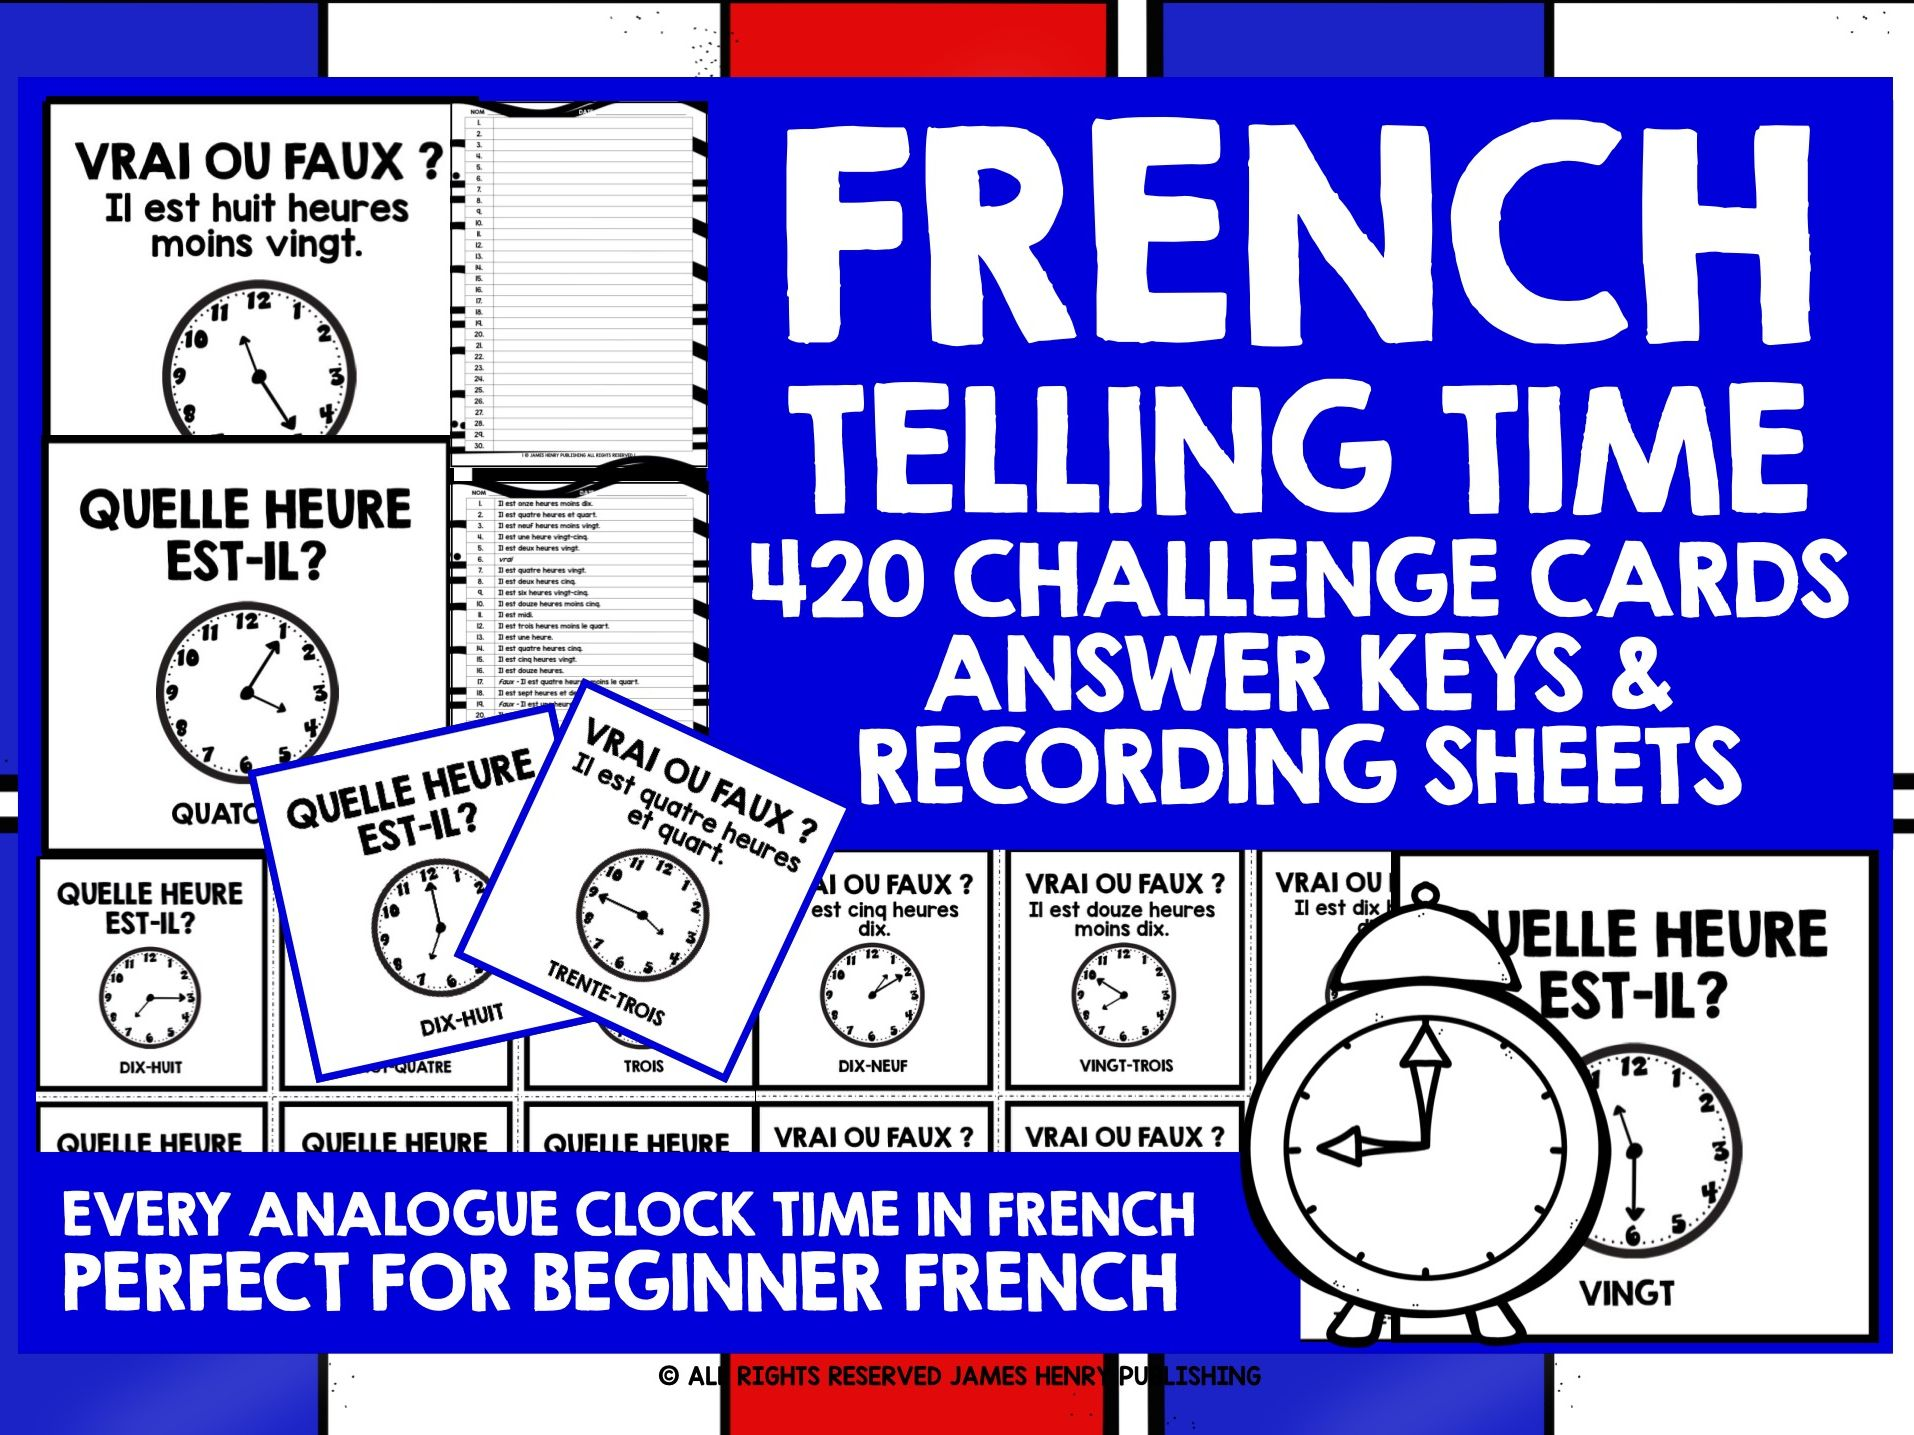 FRENCH TELLING TIME CHALLENGE CARDS